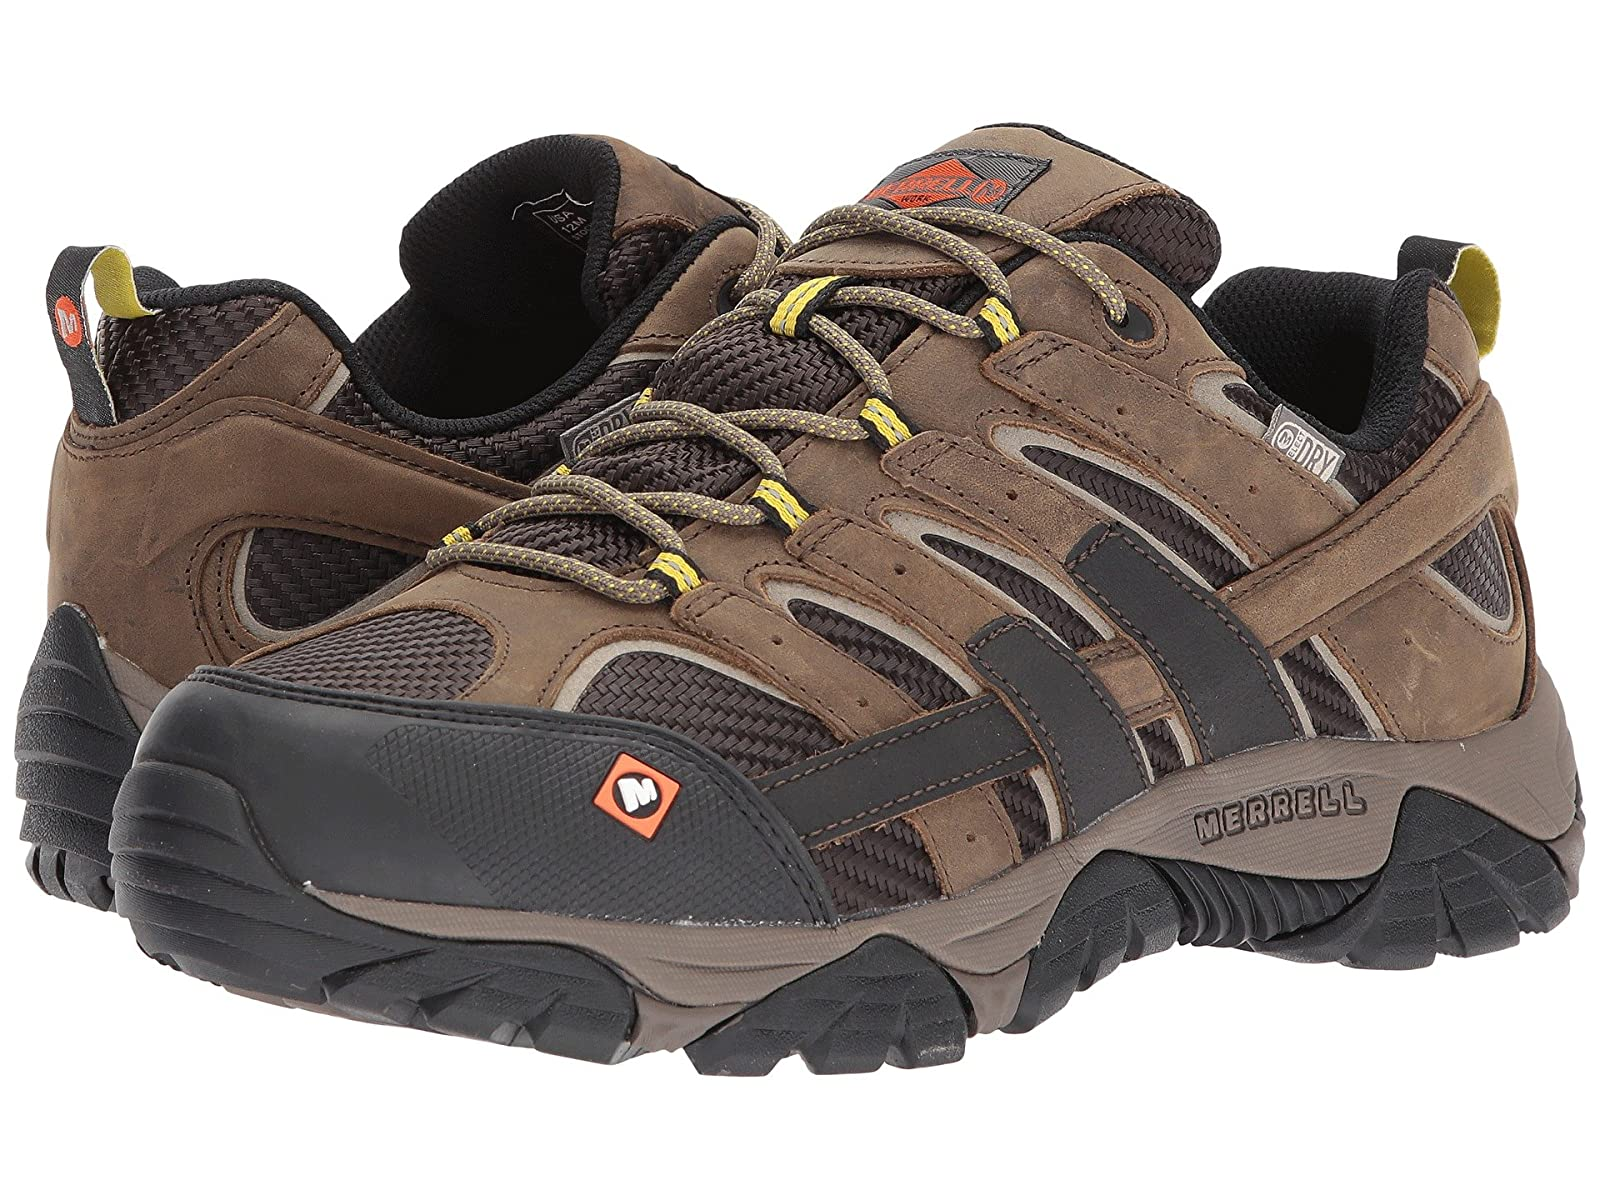 Merrell Work Moab 2 Vent Waterproof SRAtmospheric grades have affordable shoes